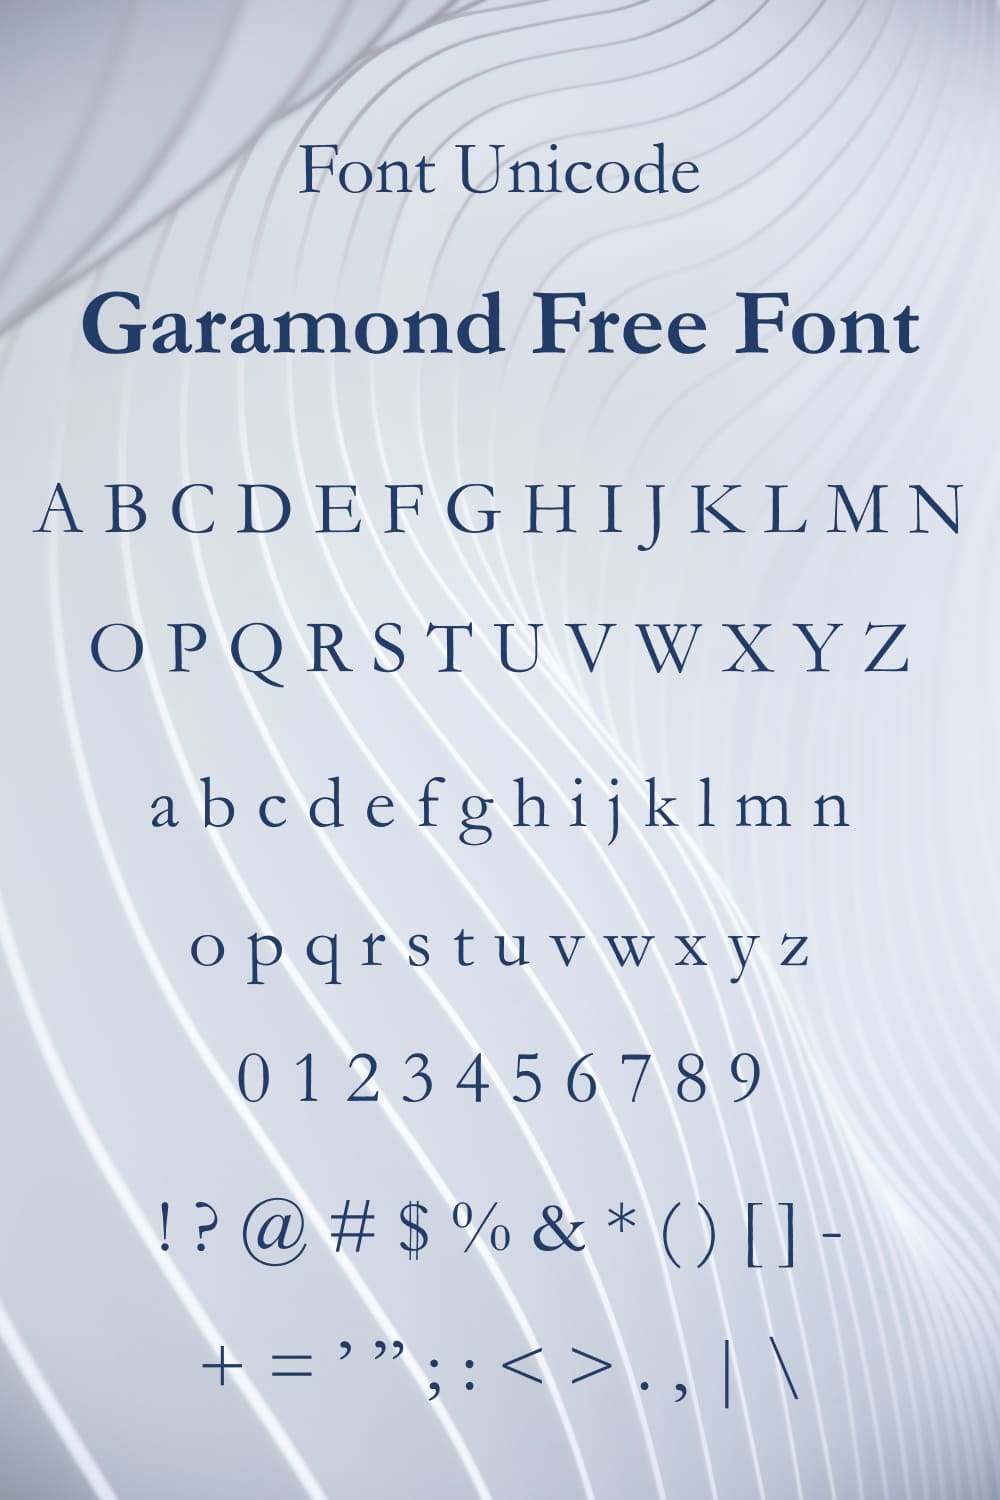 It is a beautiful font with tenderness and elegance.